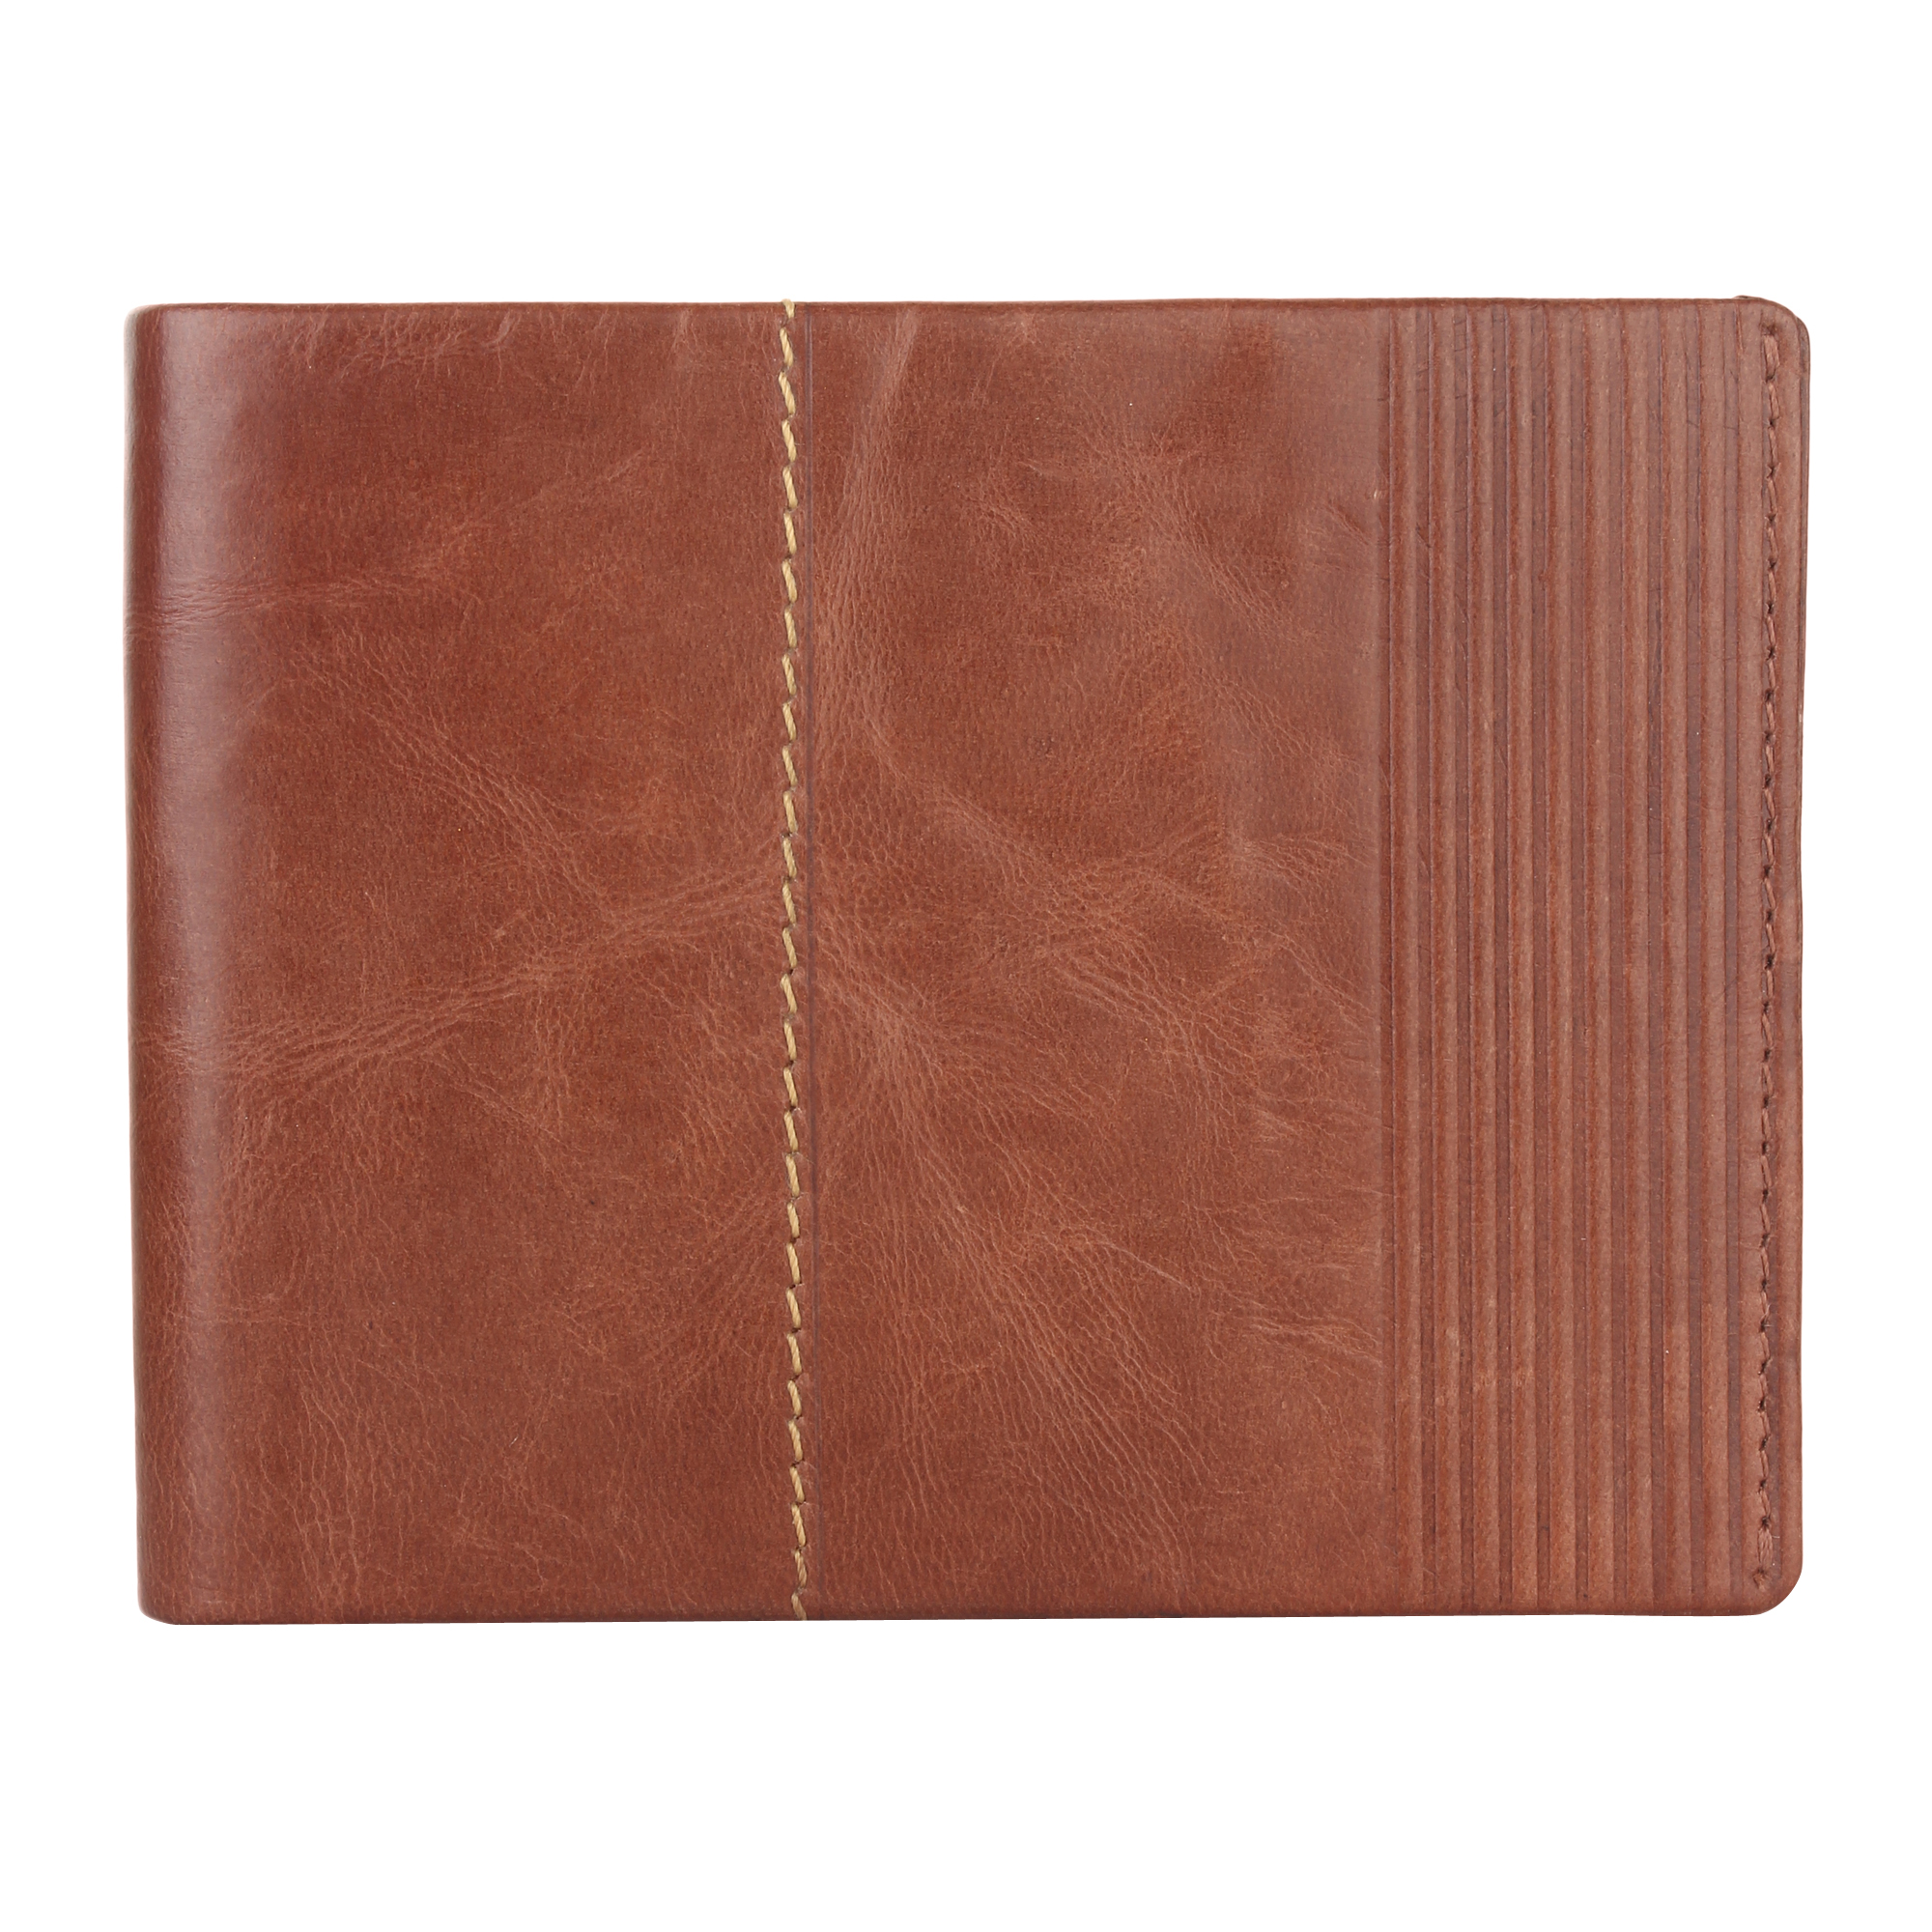 Leather Wallets Manufacturers in Delaware, Leather Wallets Suppliers in Delaware, Leather Wallets Wholesalers in Delaware, Leather Wallets Traders in Delaware